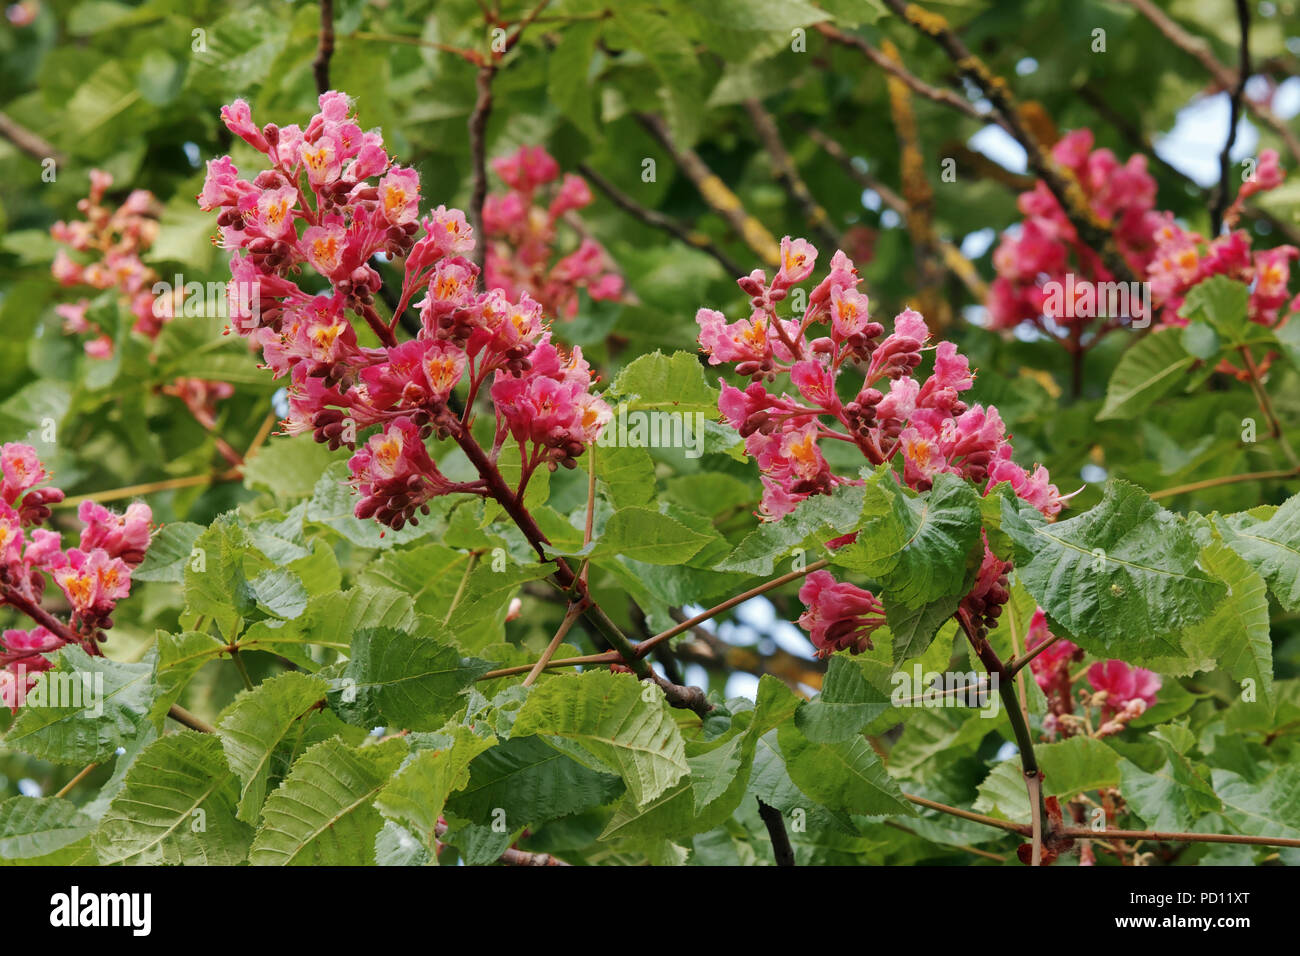 red horse chestnut, detail of flowers and leaves, april, italy - Stock Image